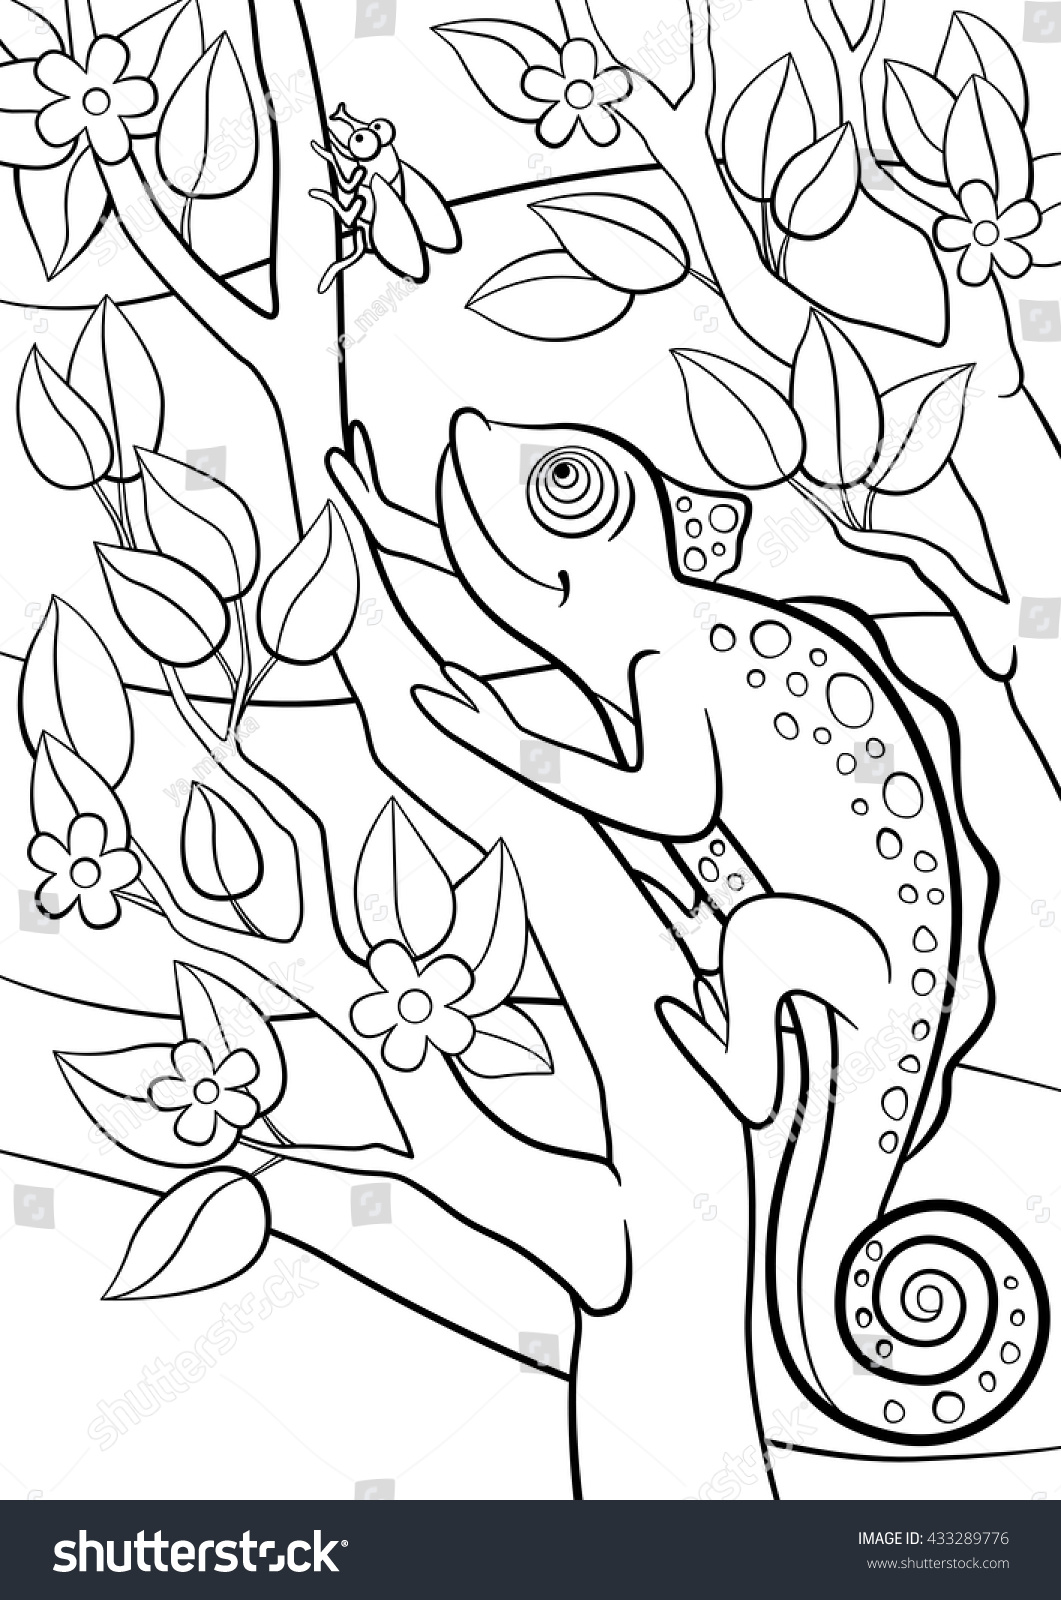 Colouring in pages wild animals - Coloring Pages Wild Animals Little Cute Chameleon Sits On The Tree Branch And Looks